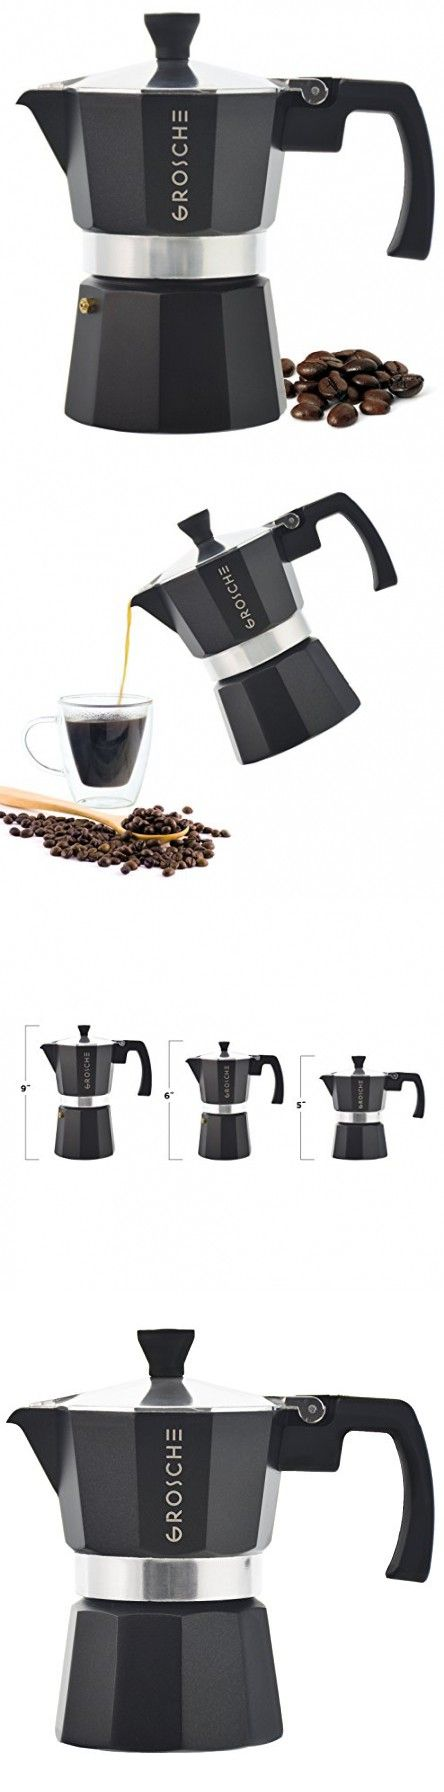 GROSCHE Milano Moka Stovetop Espresso Coffee Maker with Italian Safety Valve and Protection Handle, Black, 3 cup